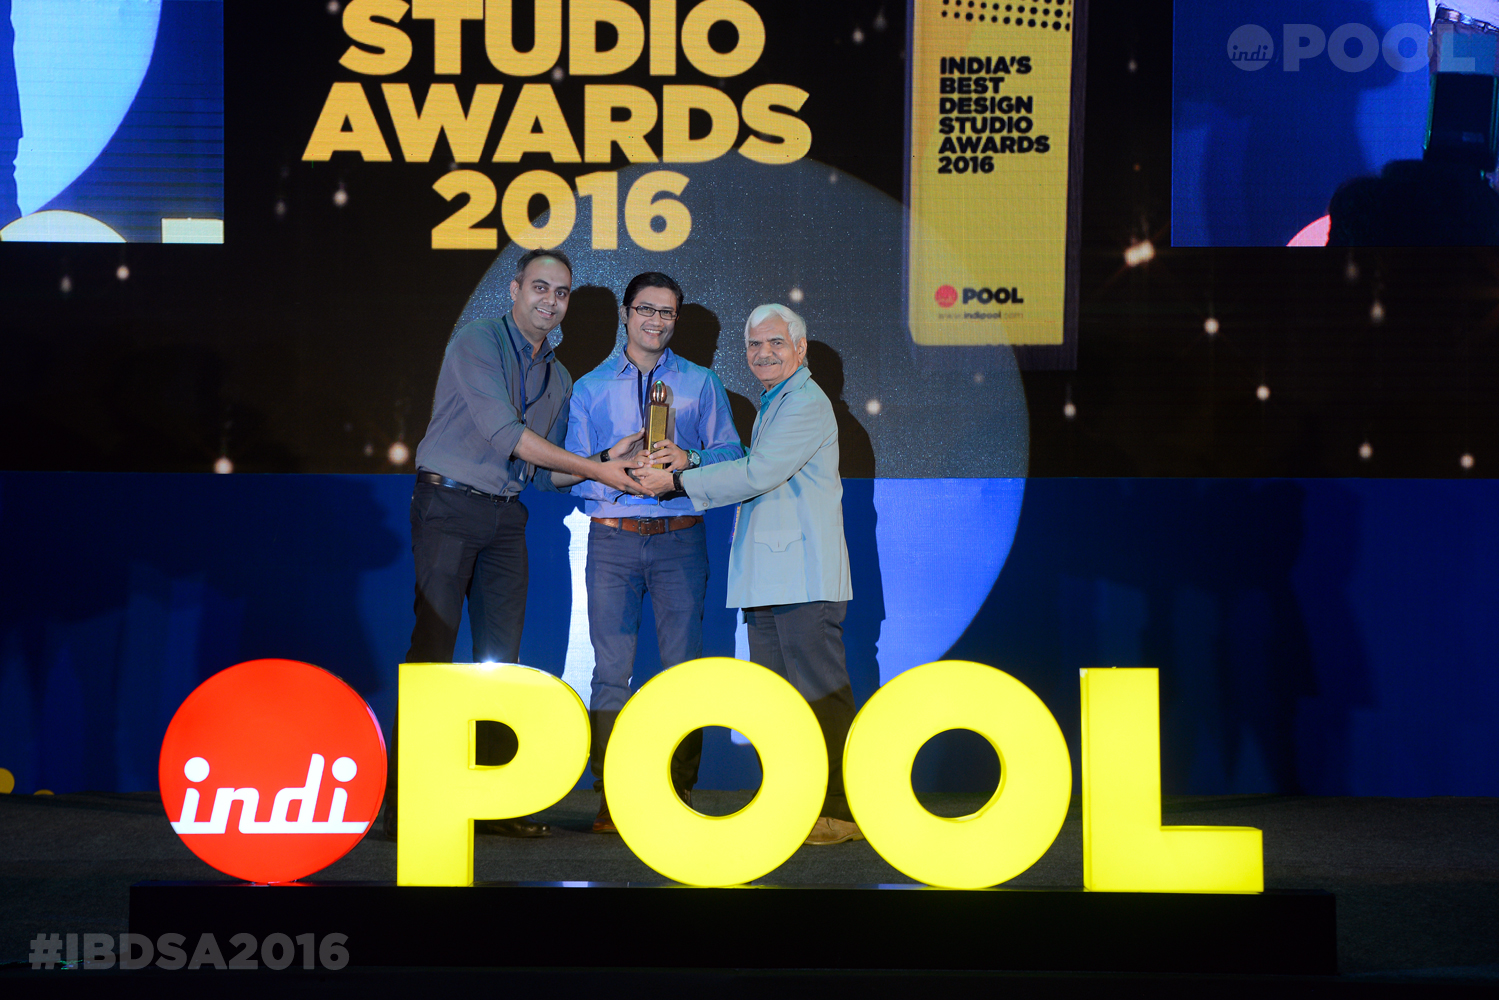 India's Best Digital Design Studio 2016 - Think Design